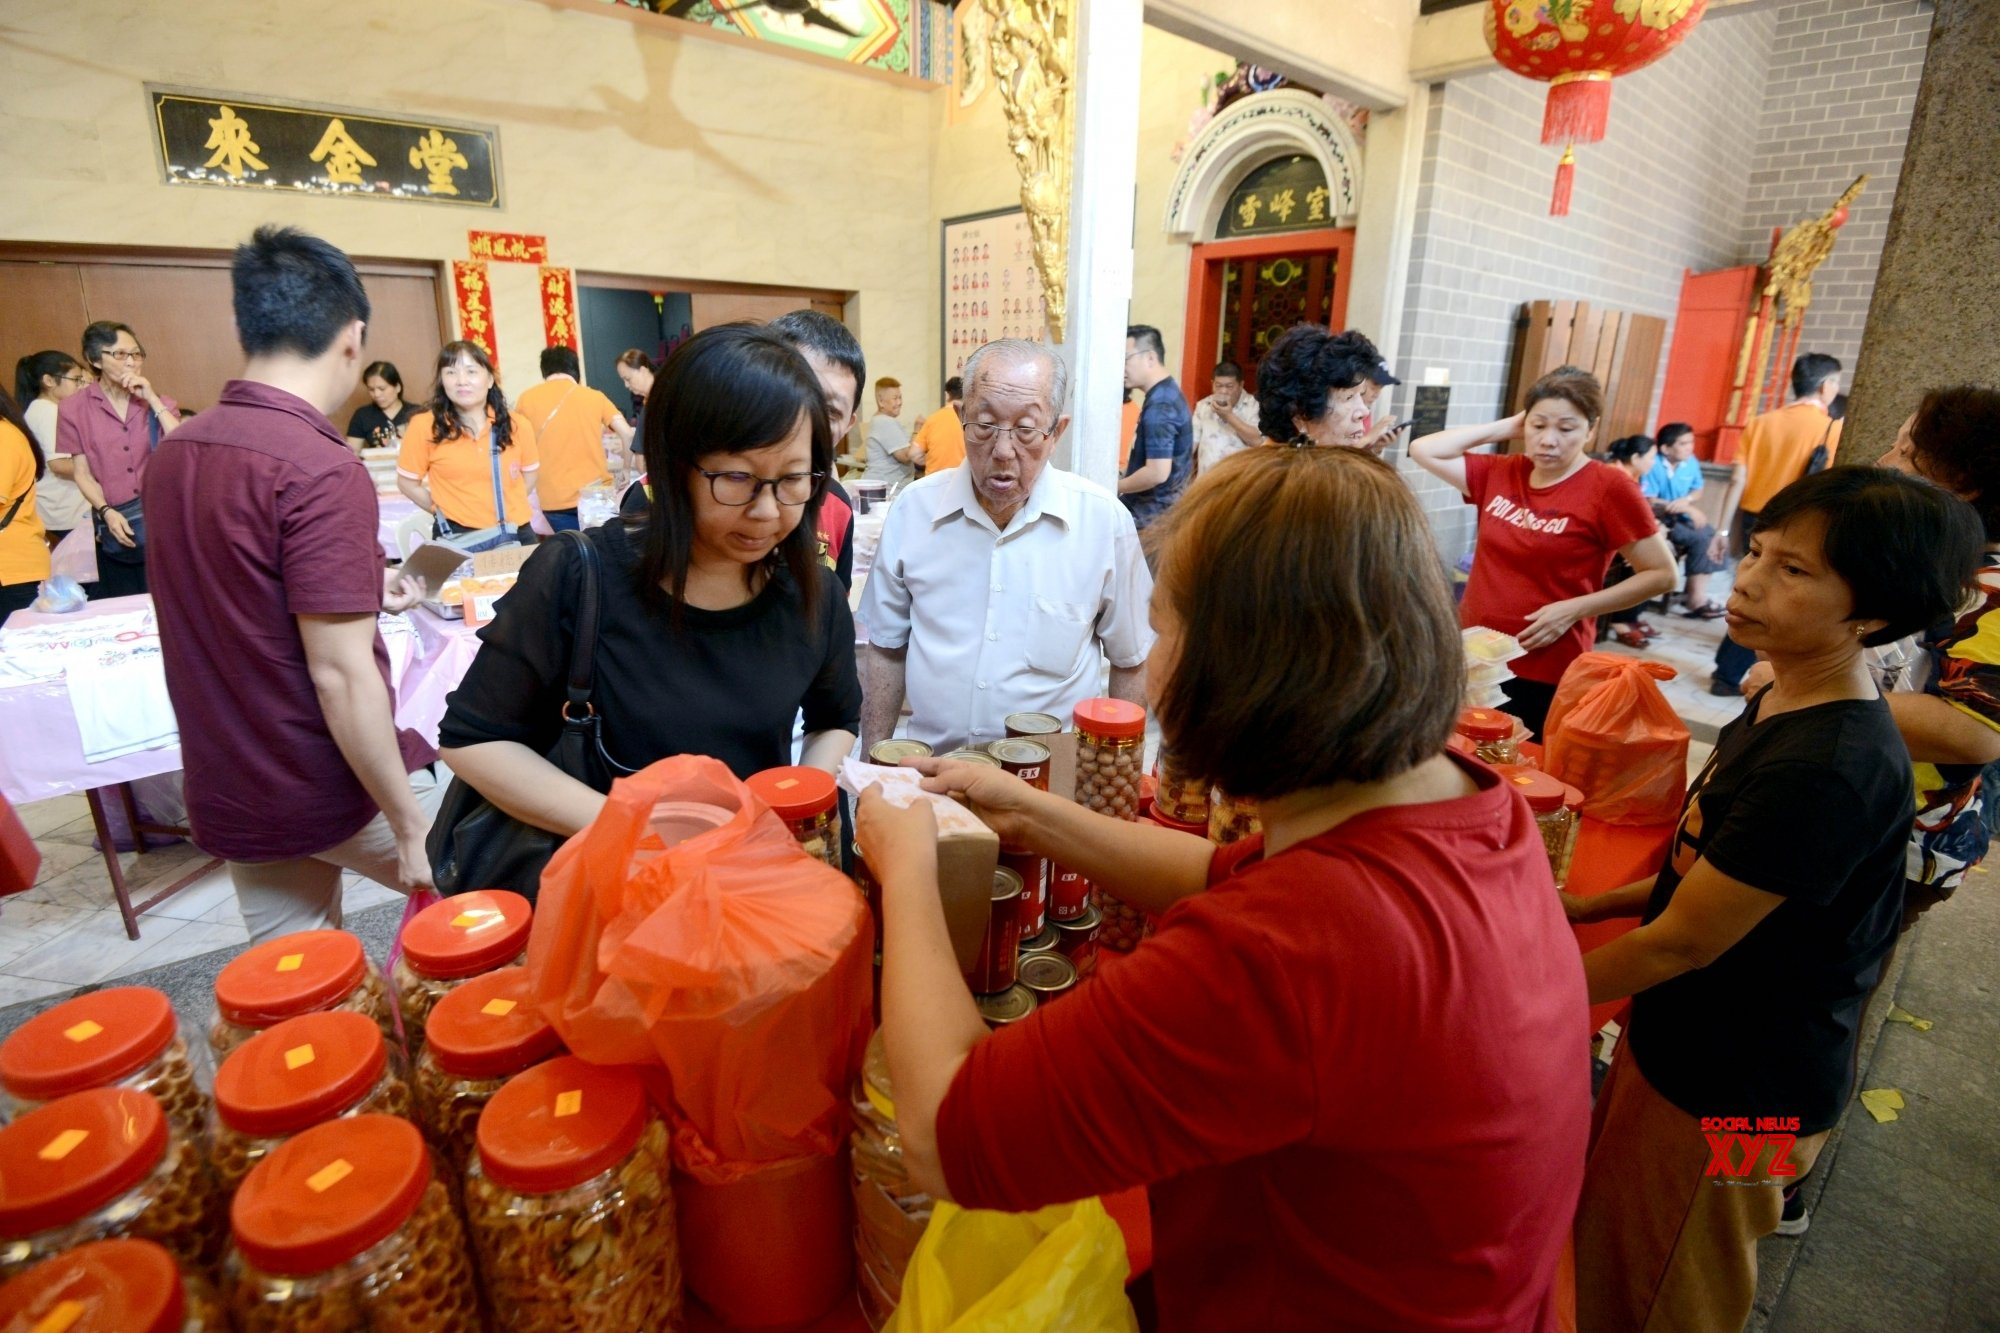 Citizens buying firecrackers for Chinese New Year will have to show ID